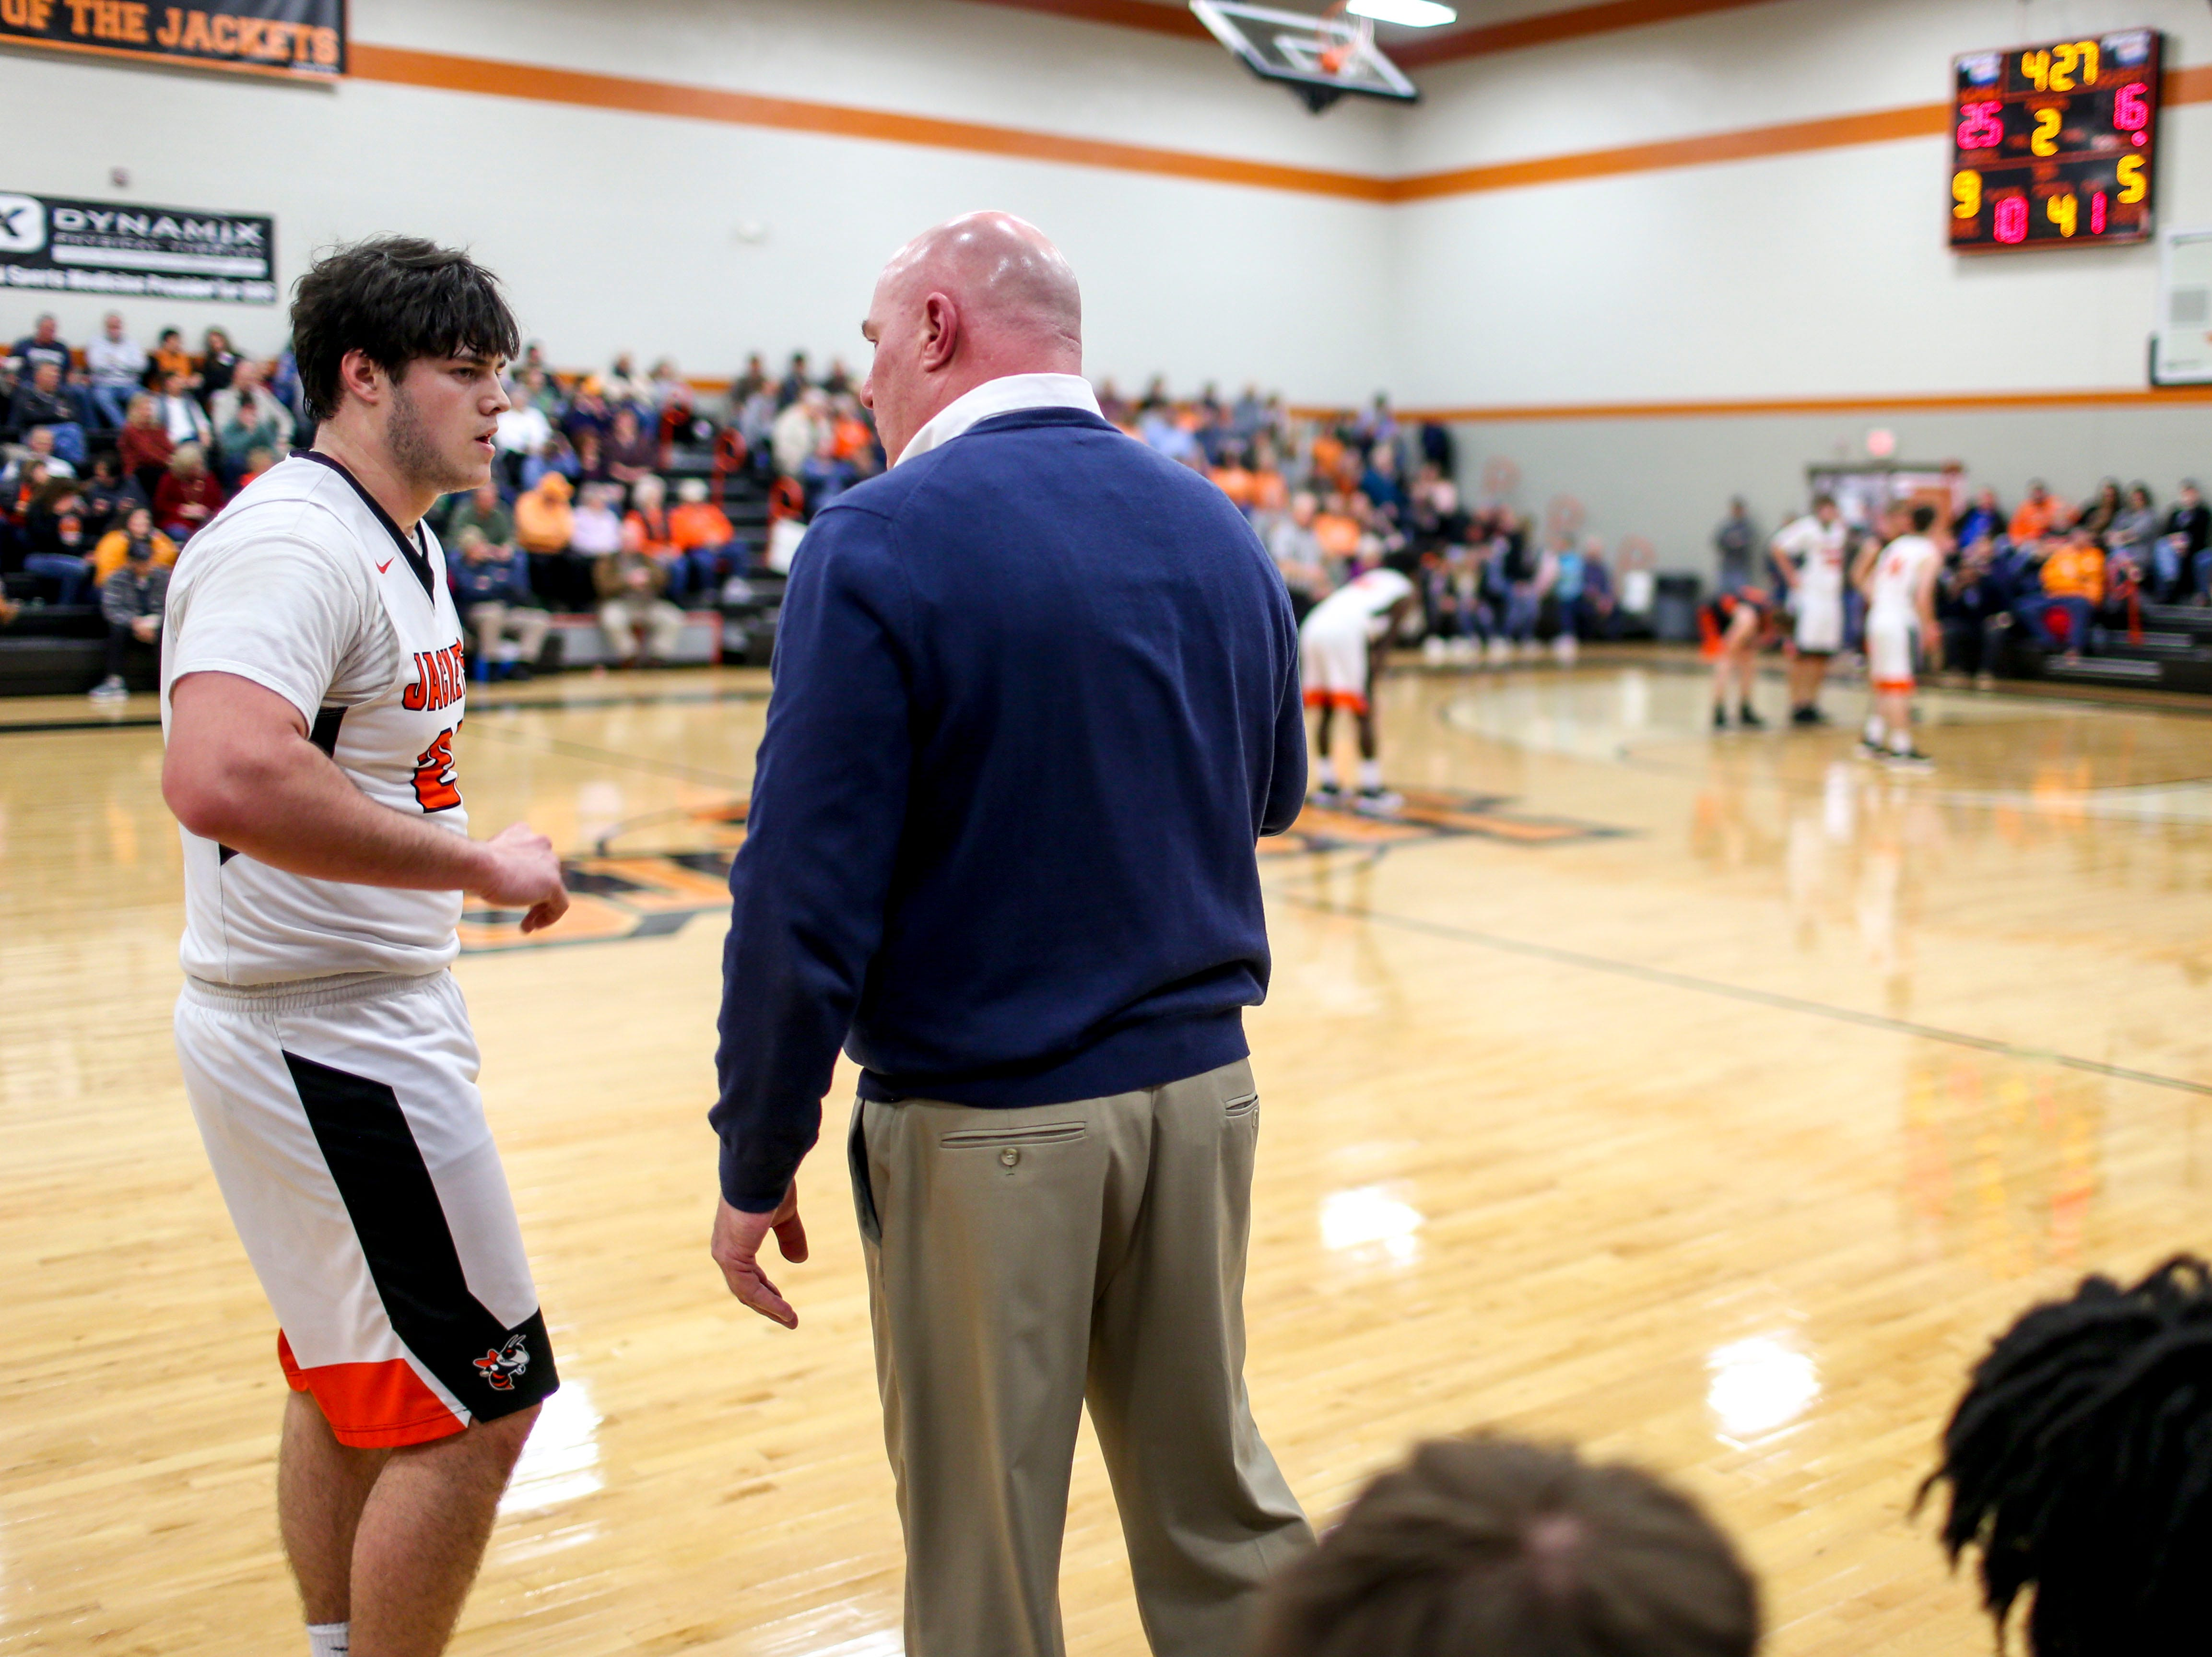 Greenfield's Jackson Crouse (20) speaks with his head coach during a TSSAA basketball game between Greenfield and Gleason at Greenfield School in Greenfield, Tenn., on Friday, Jan. 25, 2019.